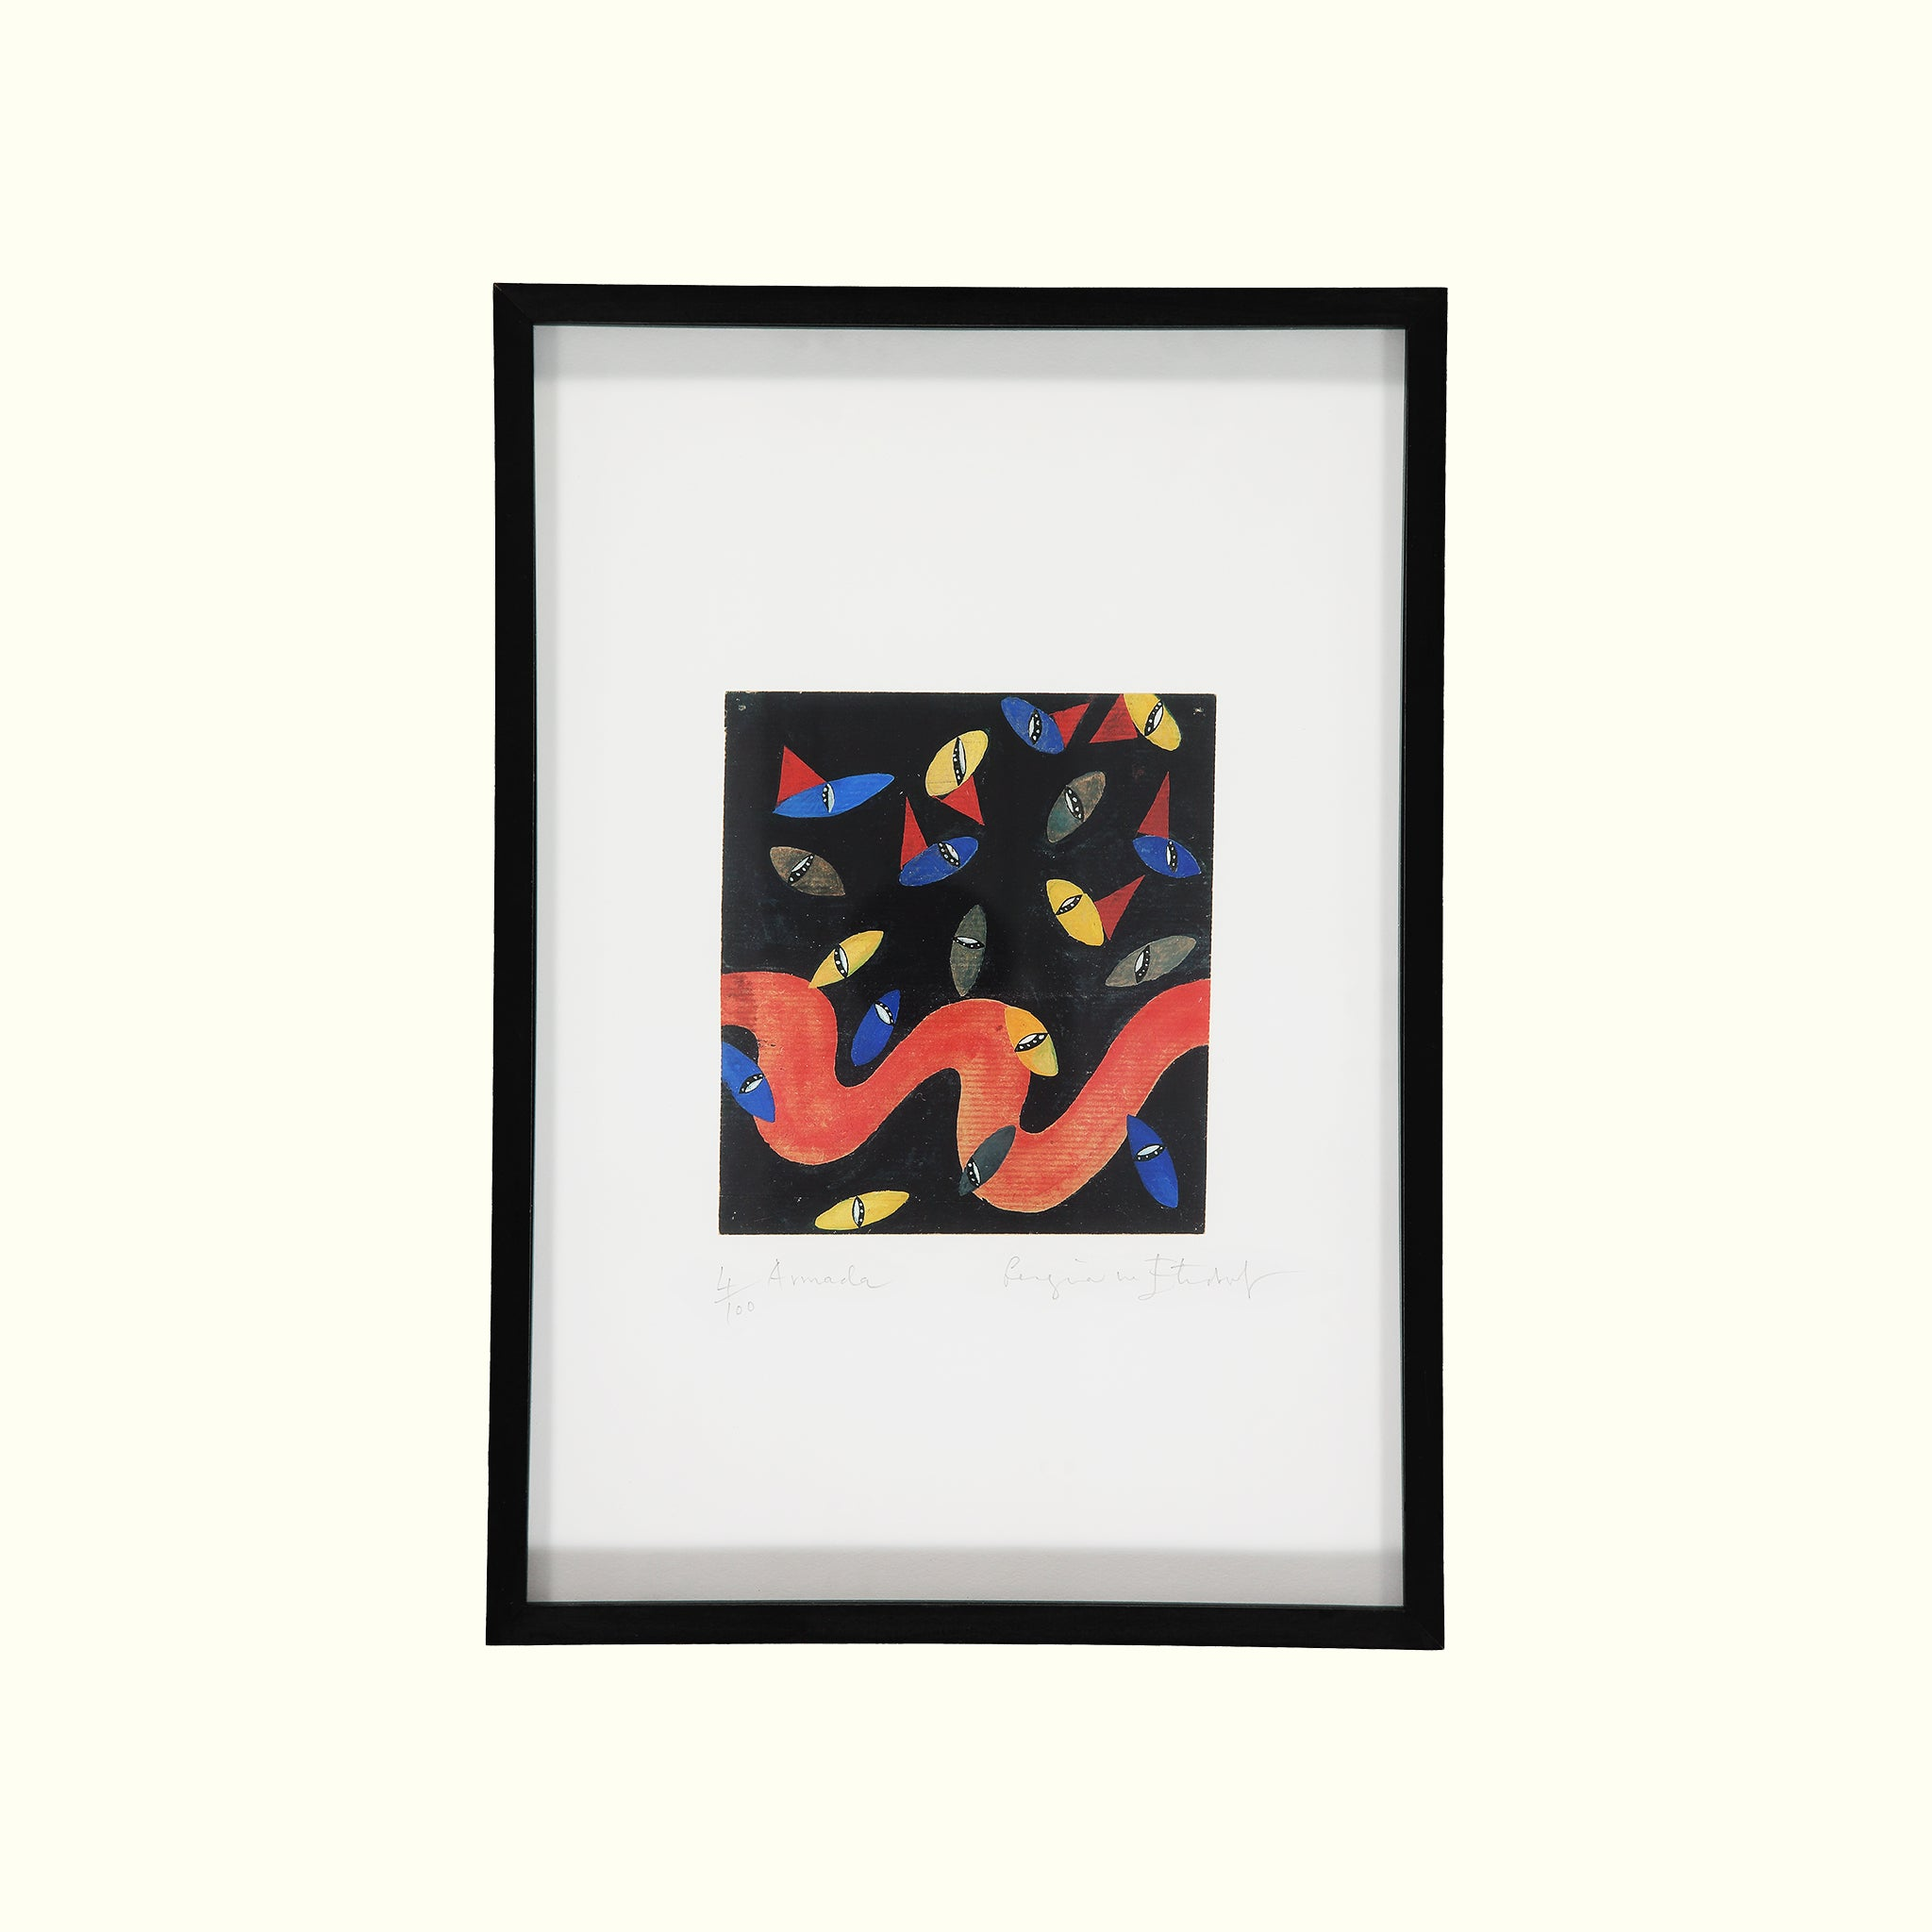 A handmade luxury British giclee print by GVE.